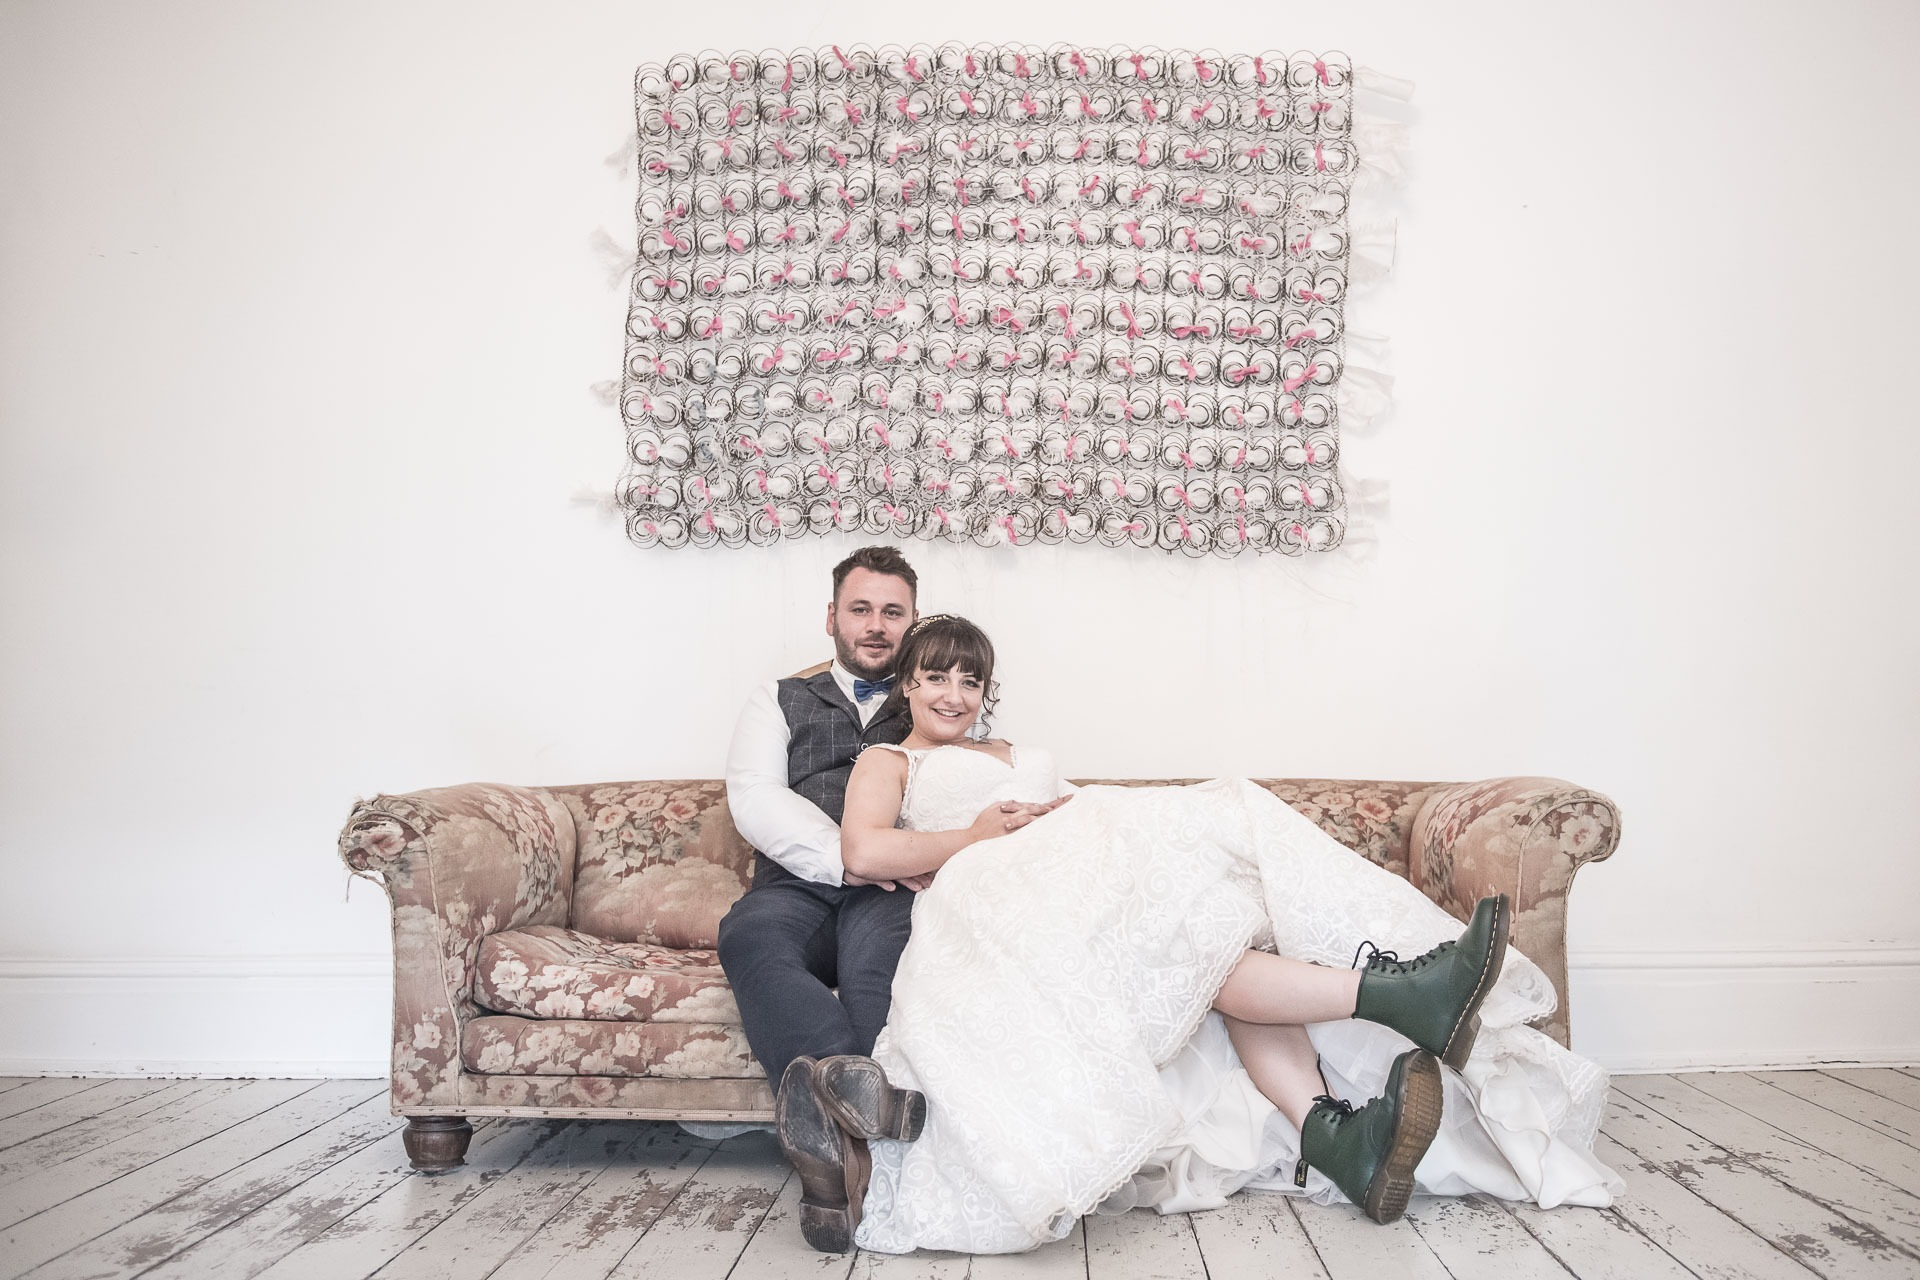 bride-and-groom-having-a-cwtch-on-a-sofa-during-their-wedding-day